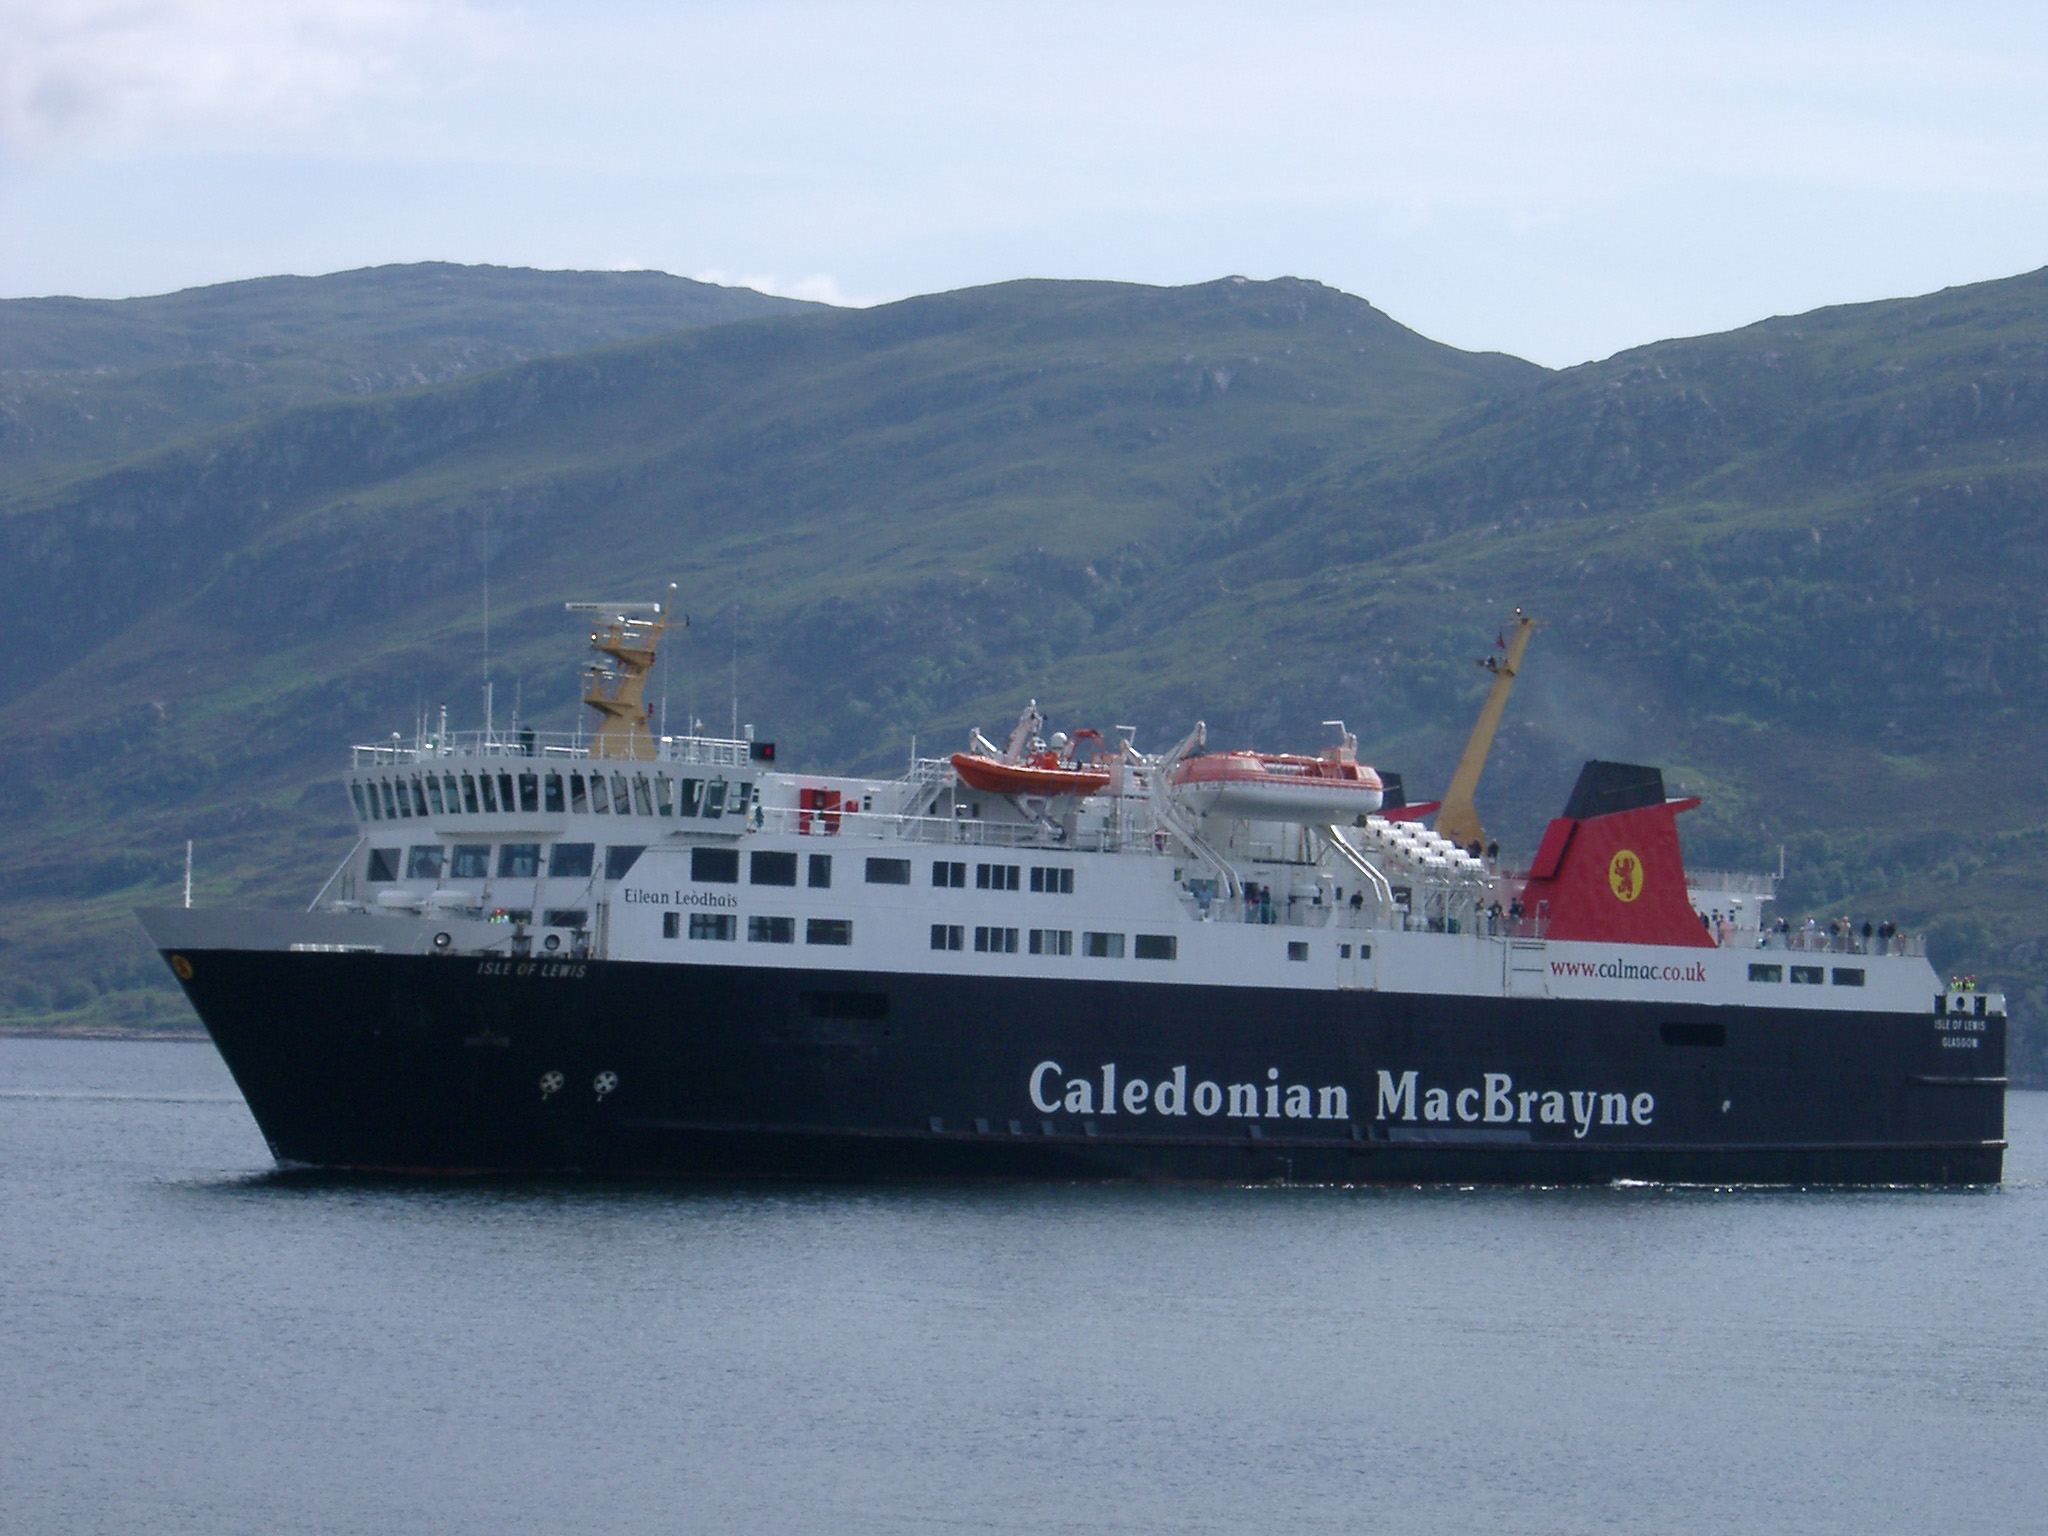 Ferry - the Caledonian MacBrayne, a Scottish ferry providing transport to the islands of the Hebrides